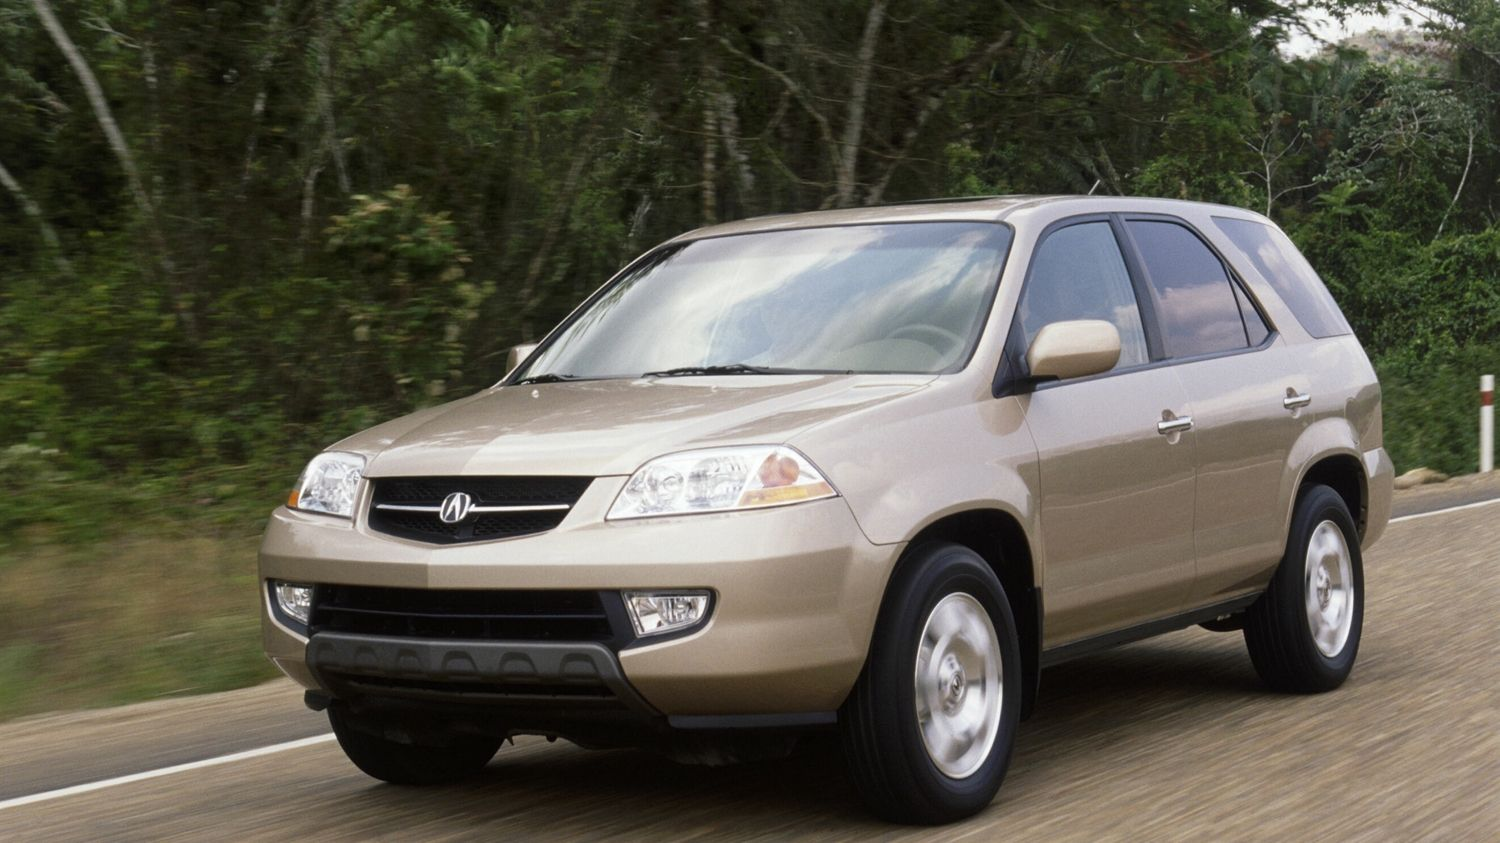 2001 Acura Mdx Owners Manual